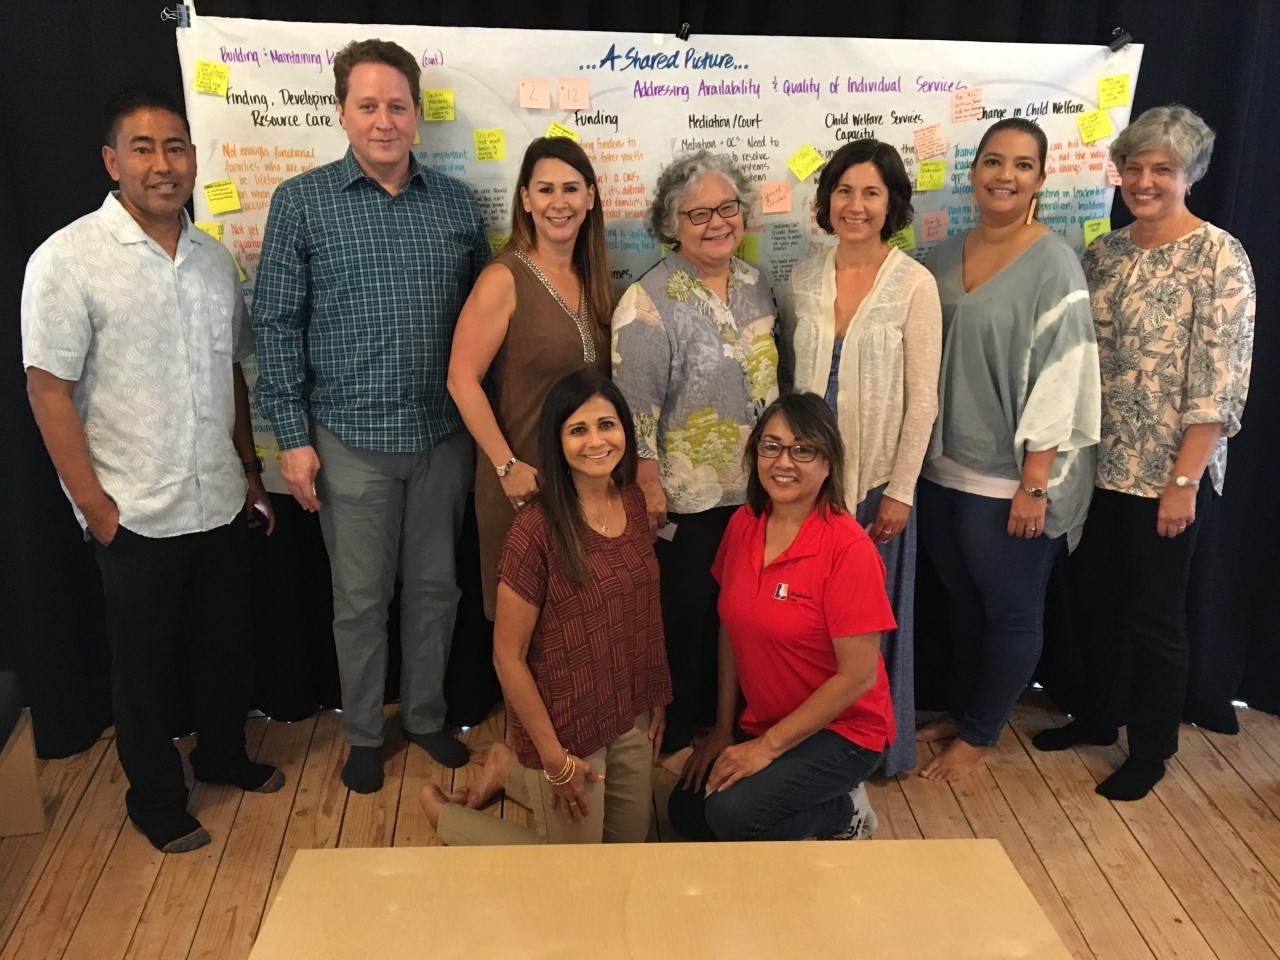 Na Kama a Haloa design team (2018), comprising participants from EPIC 'Ohana, Child Welfare Services, Lili'uokalani Trust, Kamehameha Schools, and Co-Creative Consulting.